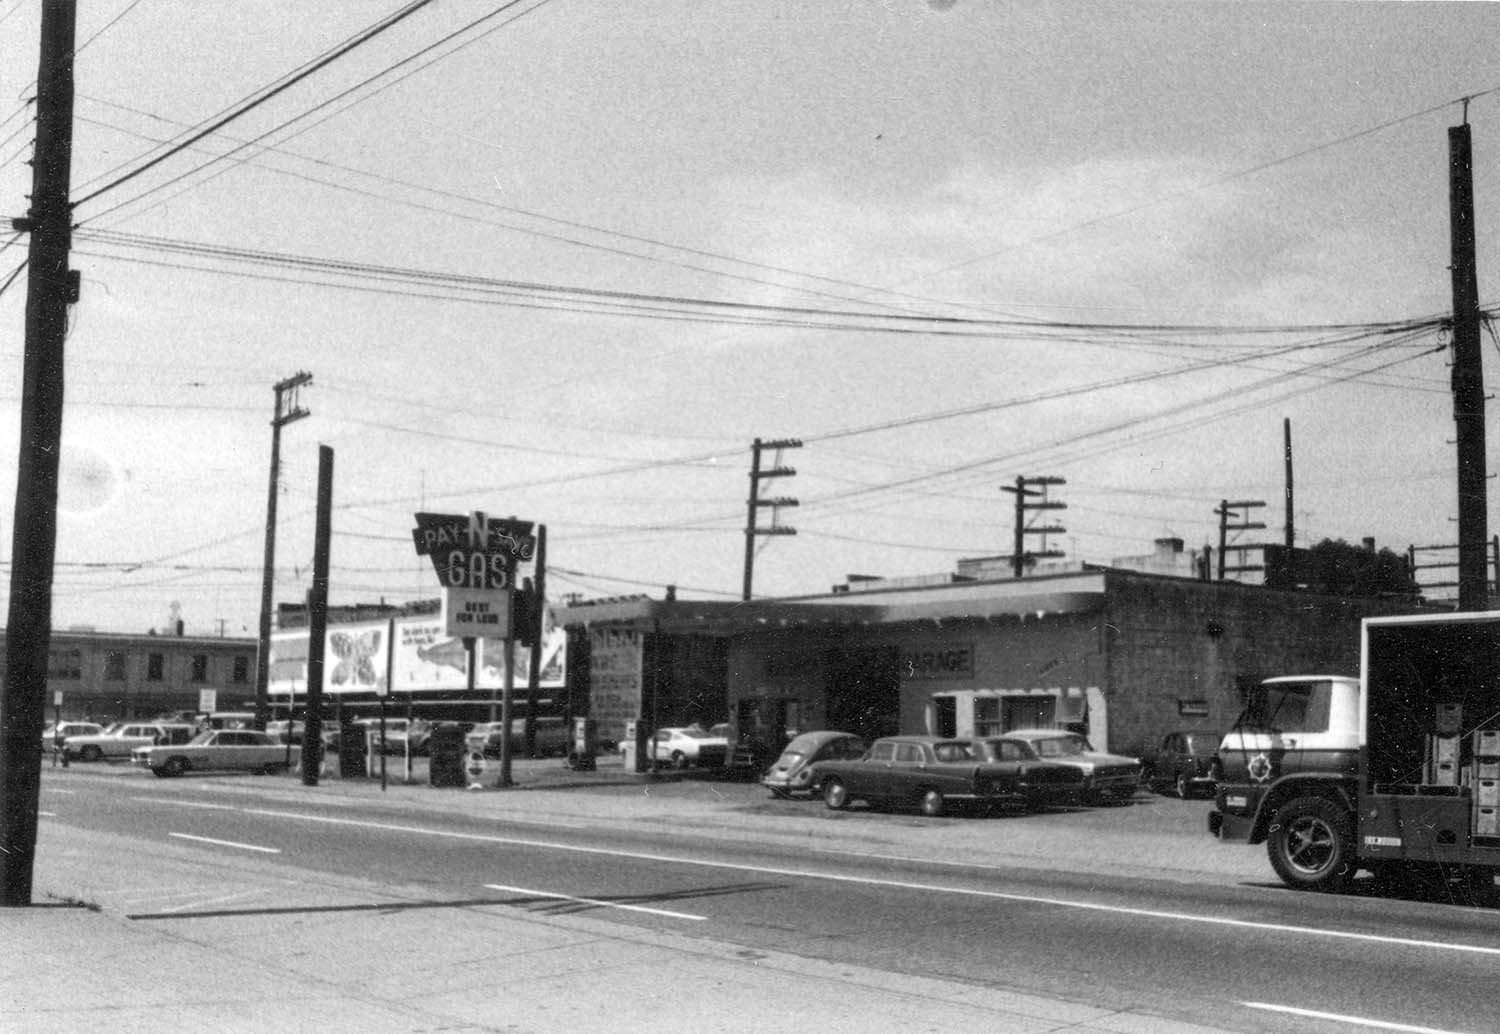 Iberica Garage and Northland Cafe 219 - 221 Prior Street as seen looking northwest across Prior Street, 1969. Reference code COV-S168-: CVA 203-55